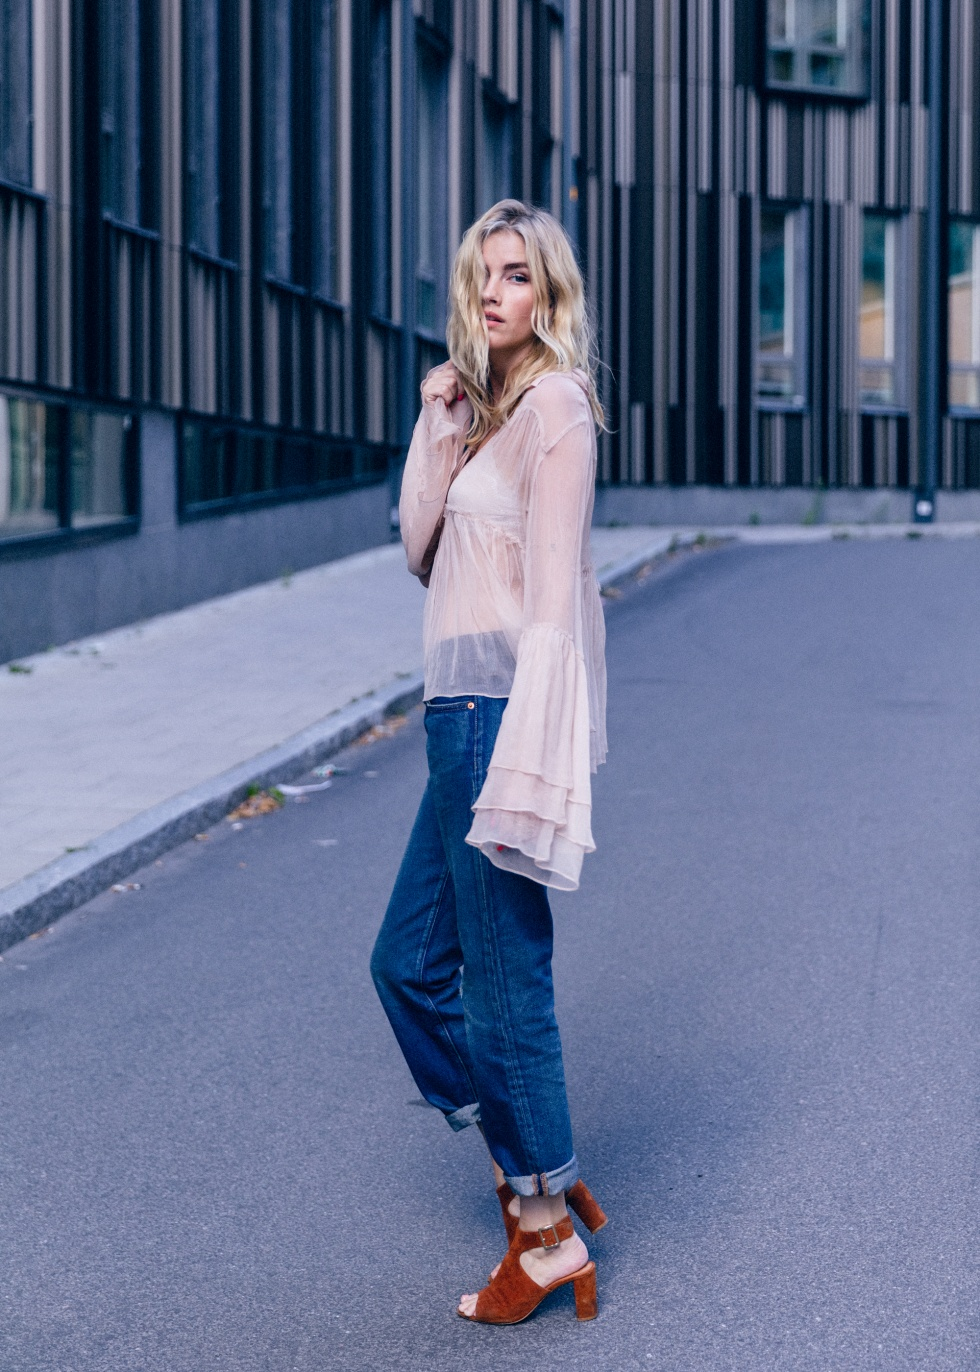 Bell sleeved blouses have been an absolute hit this summer, and still are! Elsa Ekman looks utterly charming in this sheer bell sleeved blouse, worn simply with straight leg jeans and a pair of chunky suede heels. Blouse: Hunkydory, Jeans: Levi's, Shoes: Nilson.